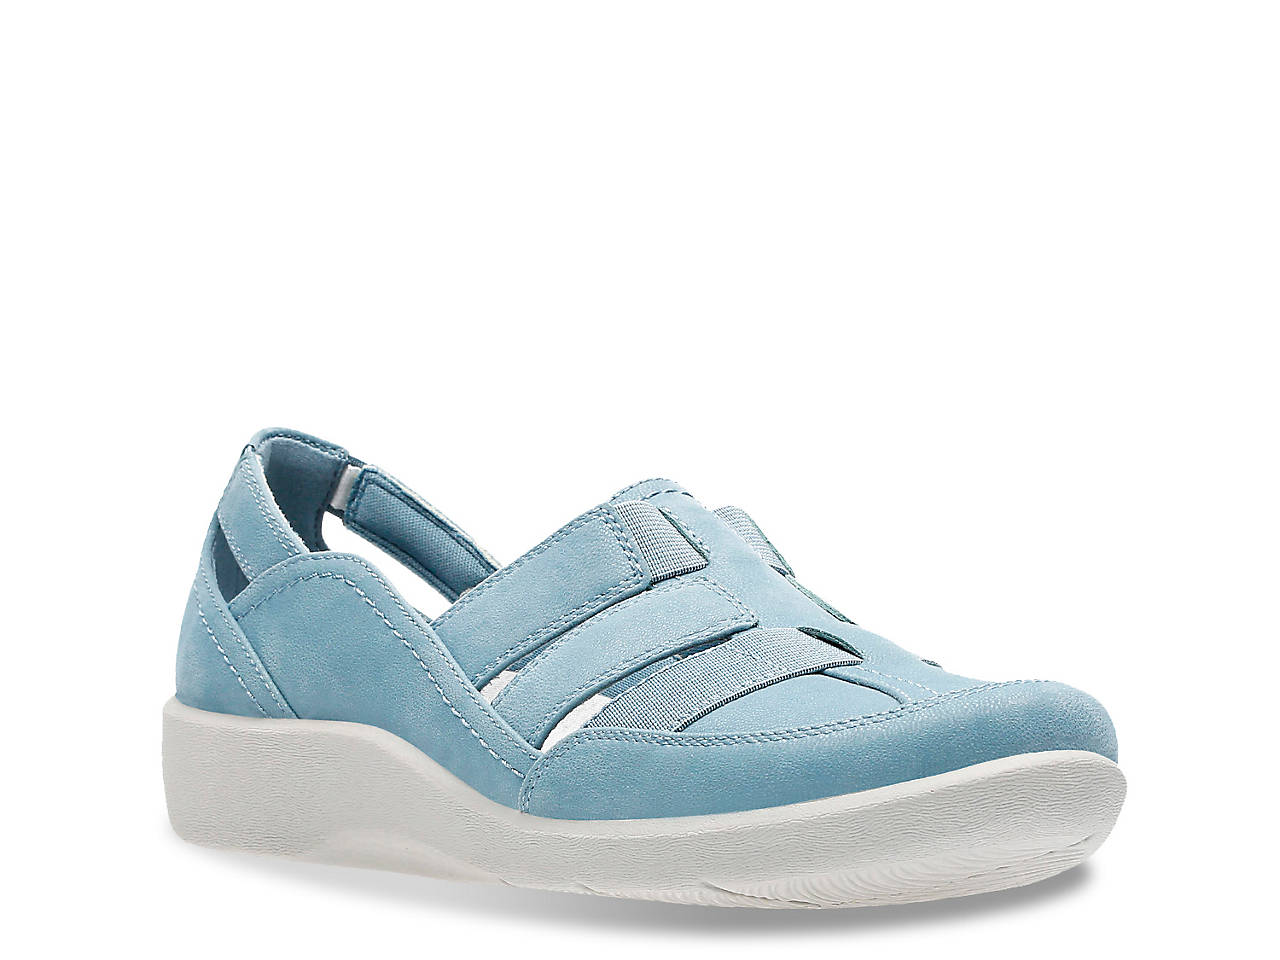 f91159360 Cloudsteppers by Clarks Sillian Wedge Slip-On Women s Shoes